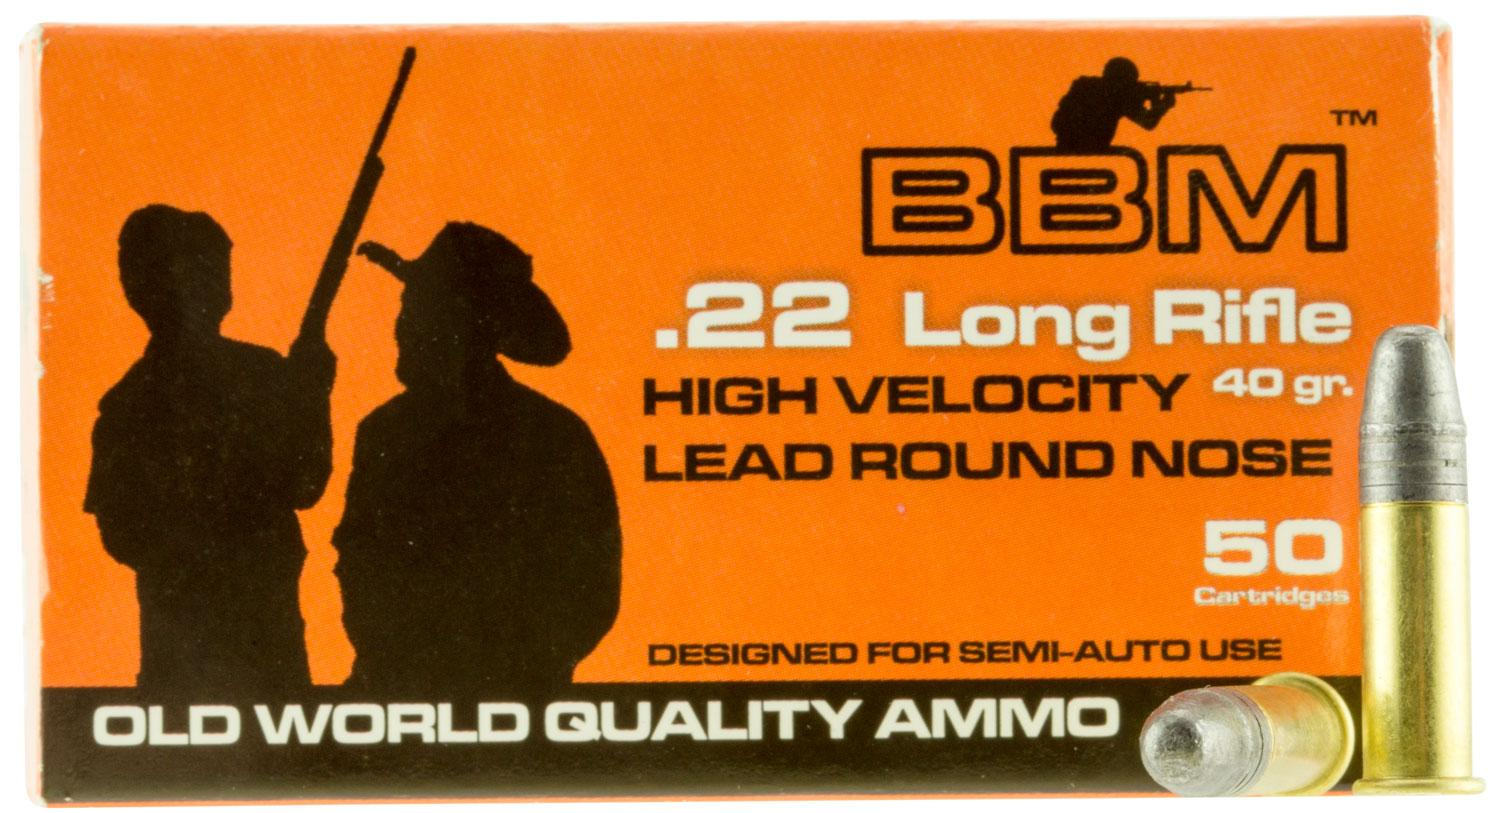 Bbm 899033 High Velocity 22 Lr 40 Gr Lead Round Nose 50 Bx/100 Cs